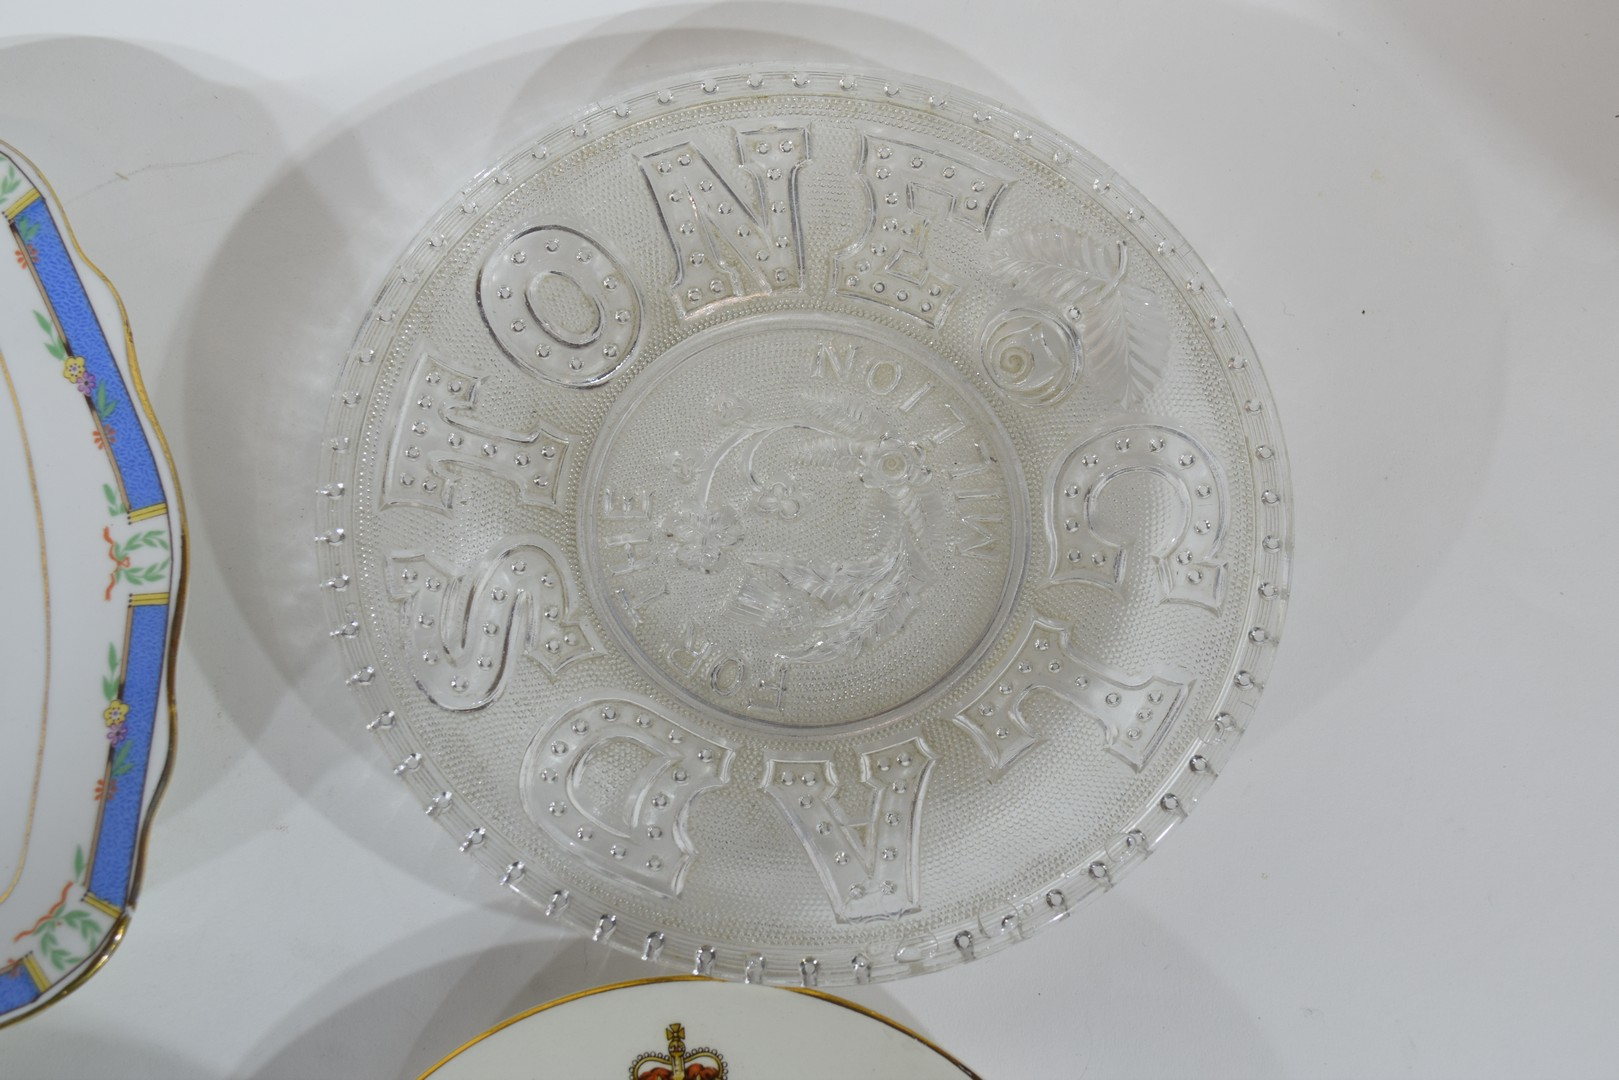 Group of decorative plates including a Paragon commemorative plate - Image 7 of 7